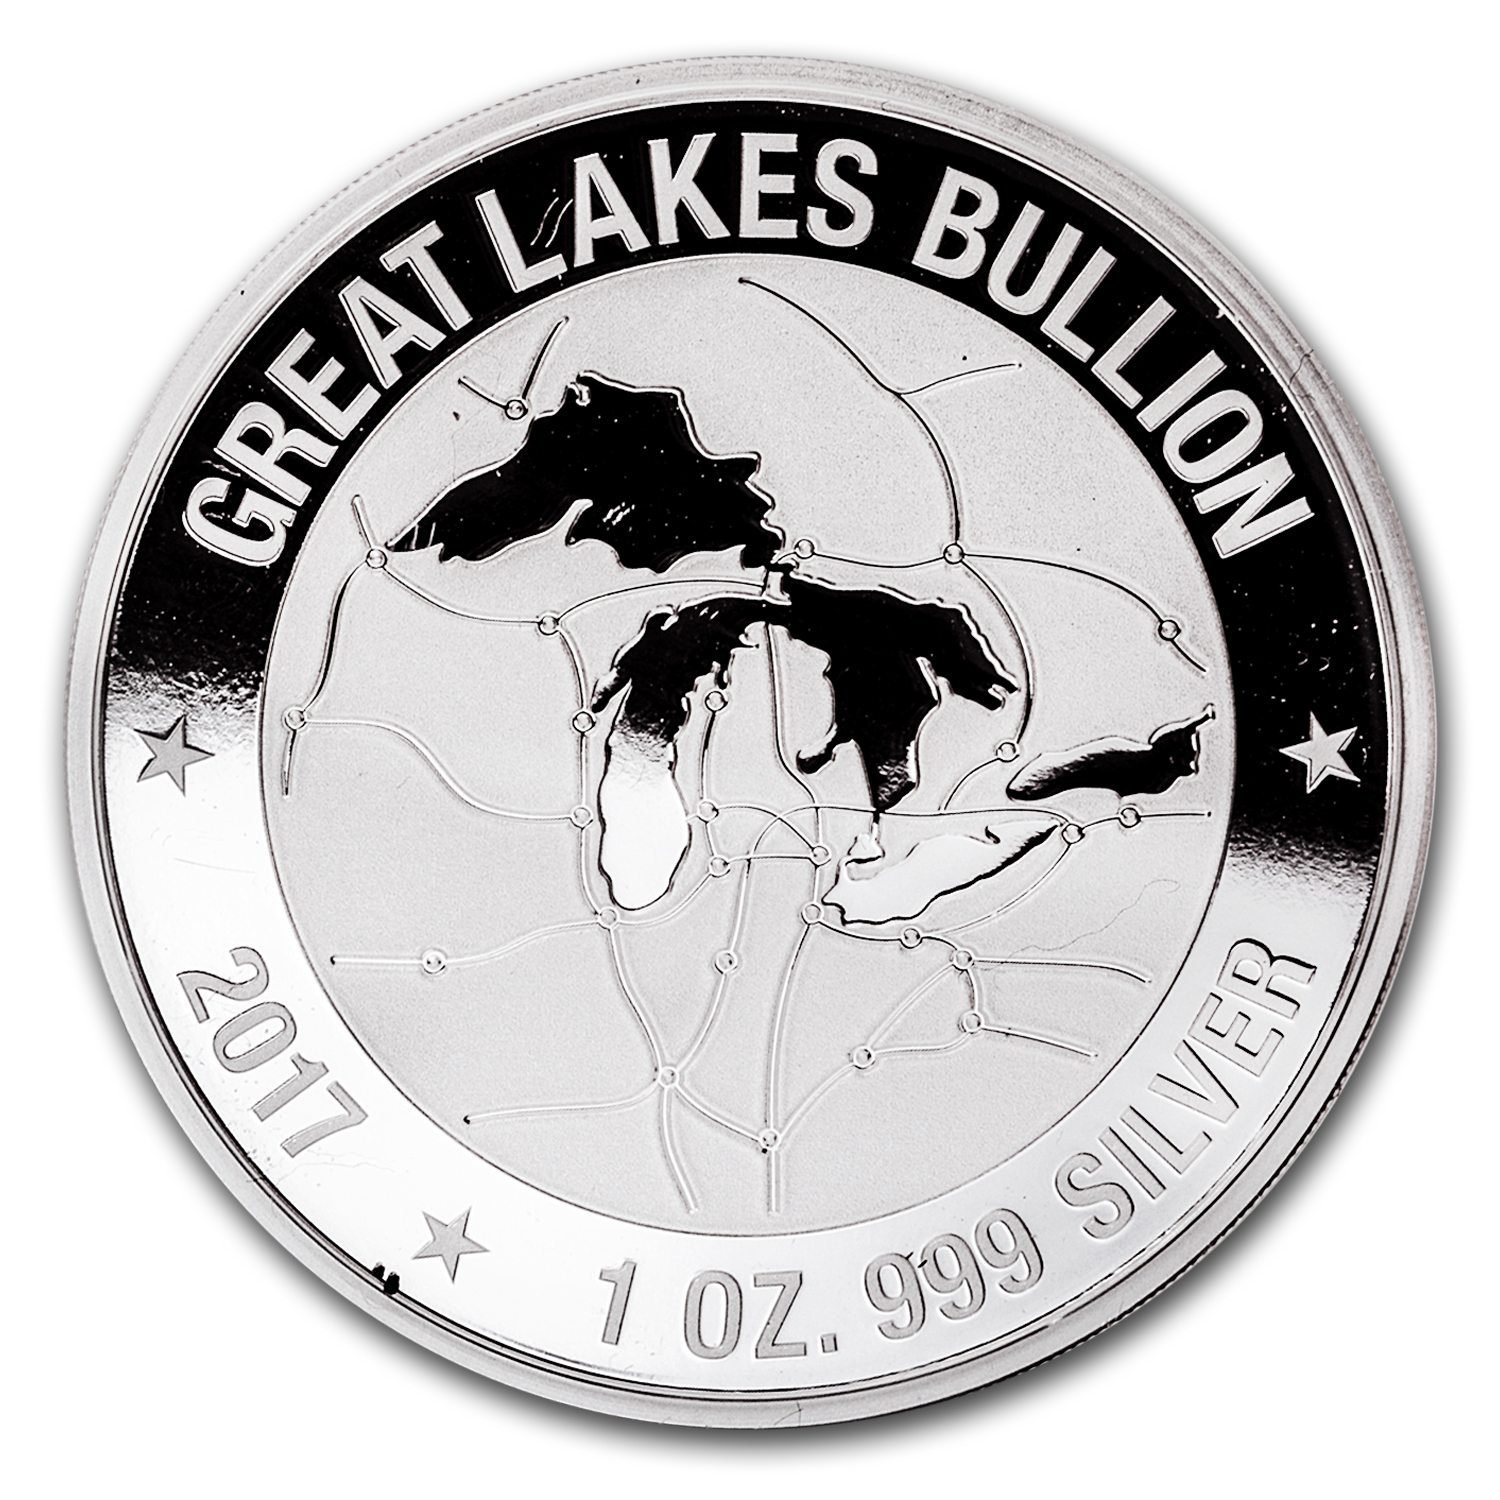 1 oz Silver Round - Great Lakes Bullion Landscape